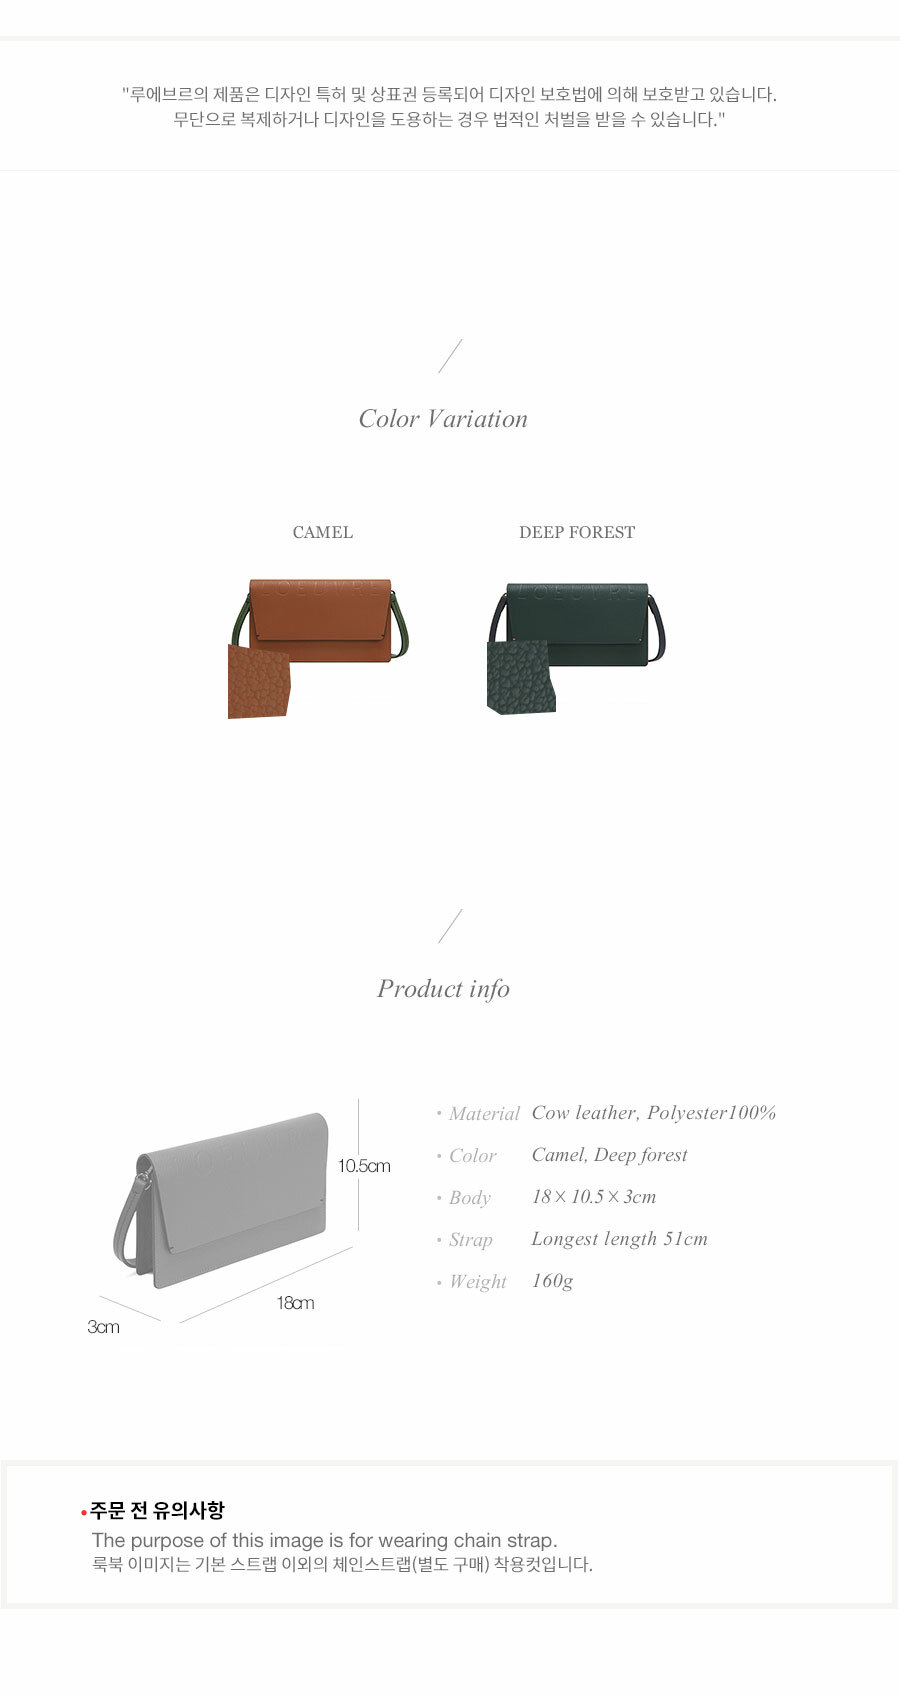 product_info